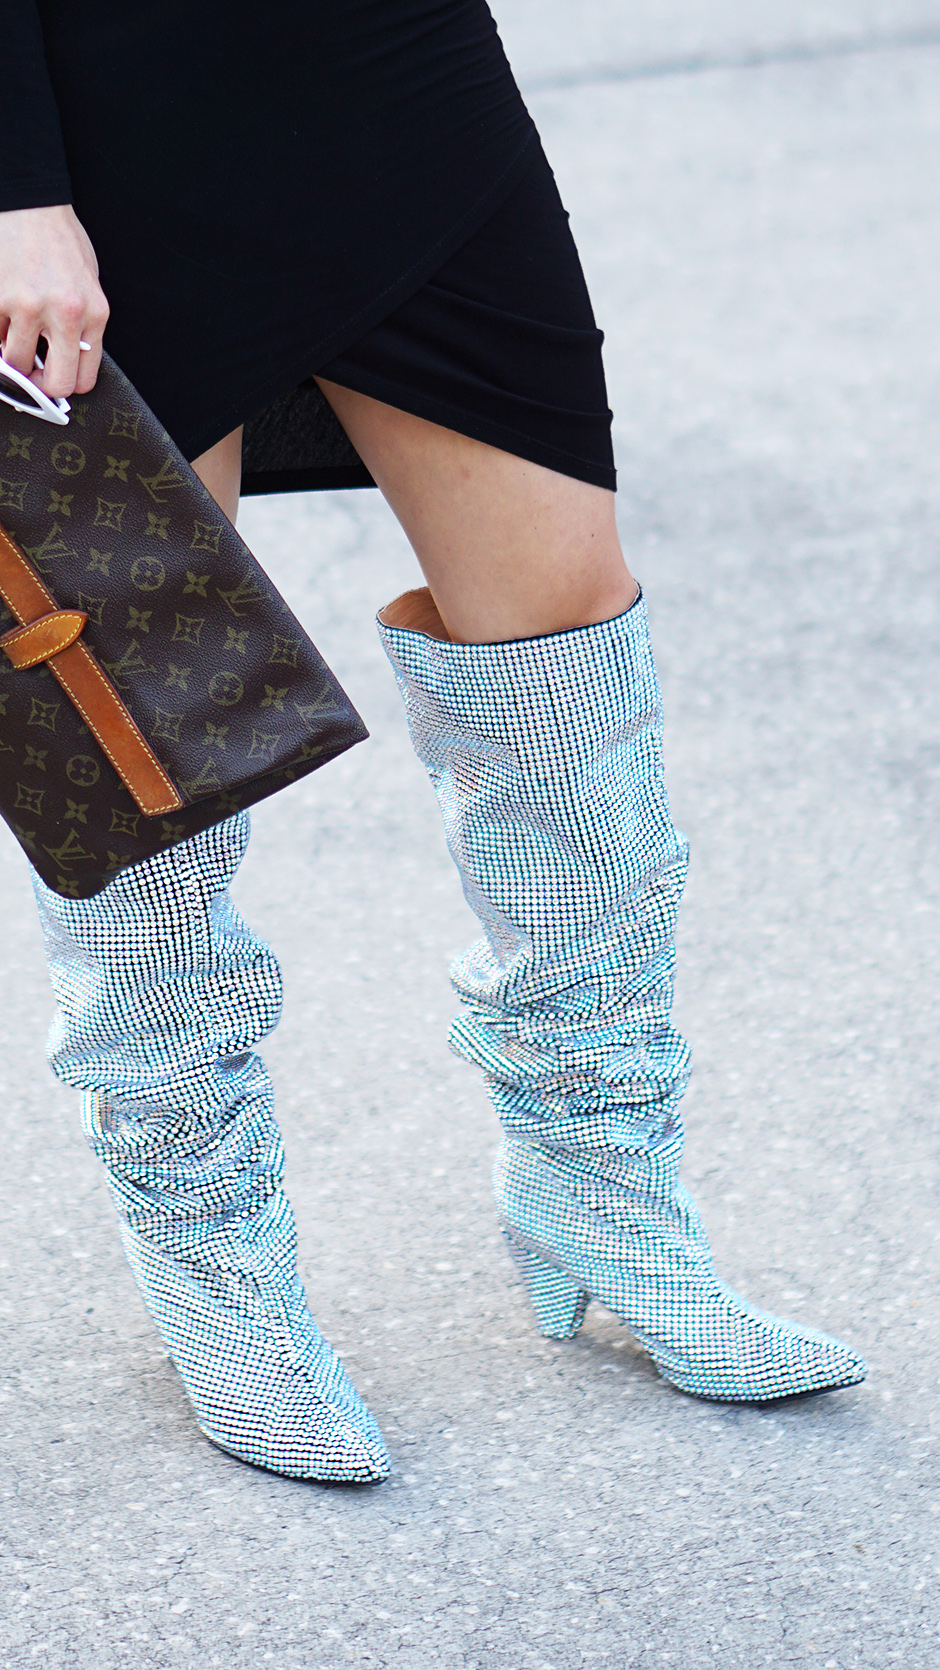 Rhinestone_Glitter_Boots_Street_Style_Streetstyle_Fashion_Outfit_Inspiration_Sparkly_Shoes.jpg